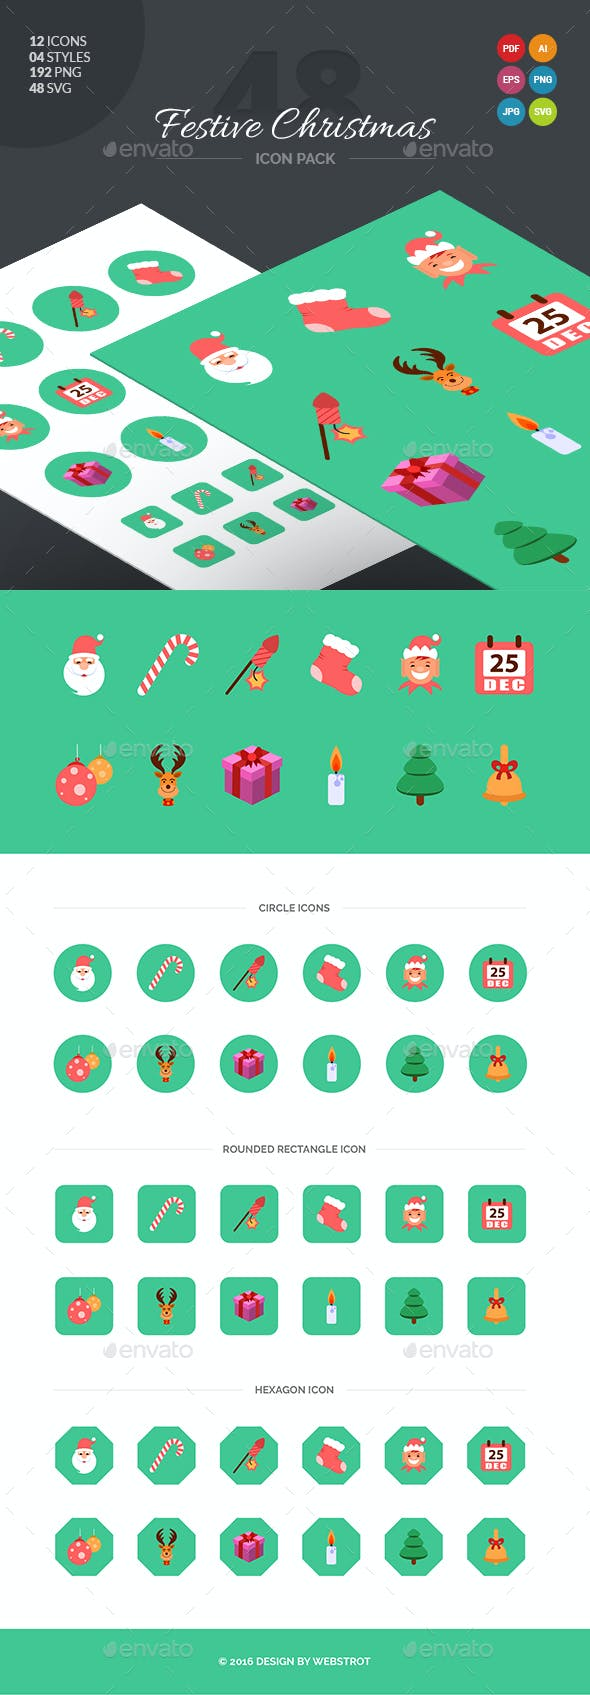 27 Best Seasonal Icons